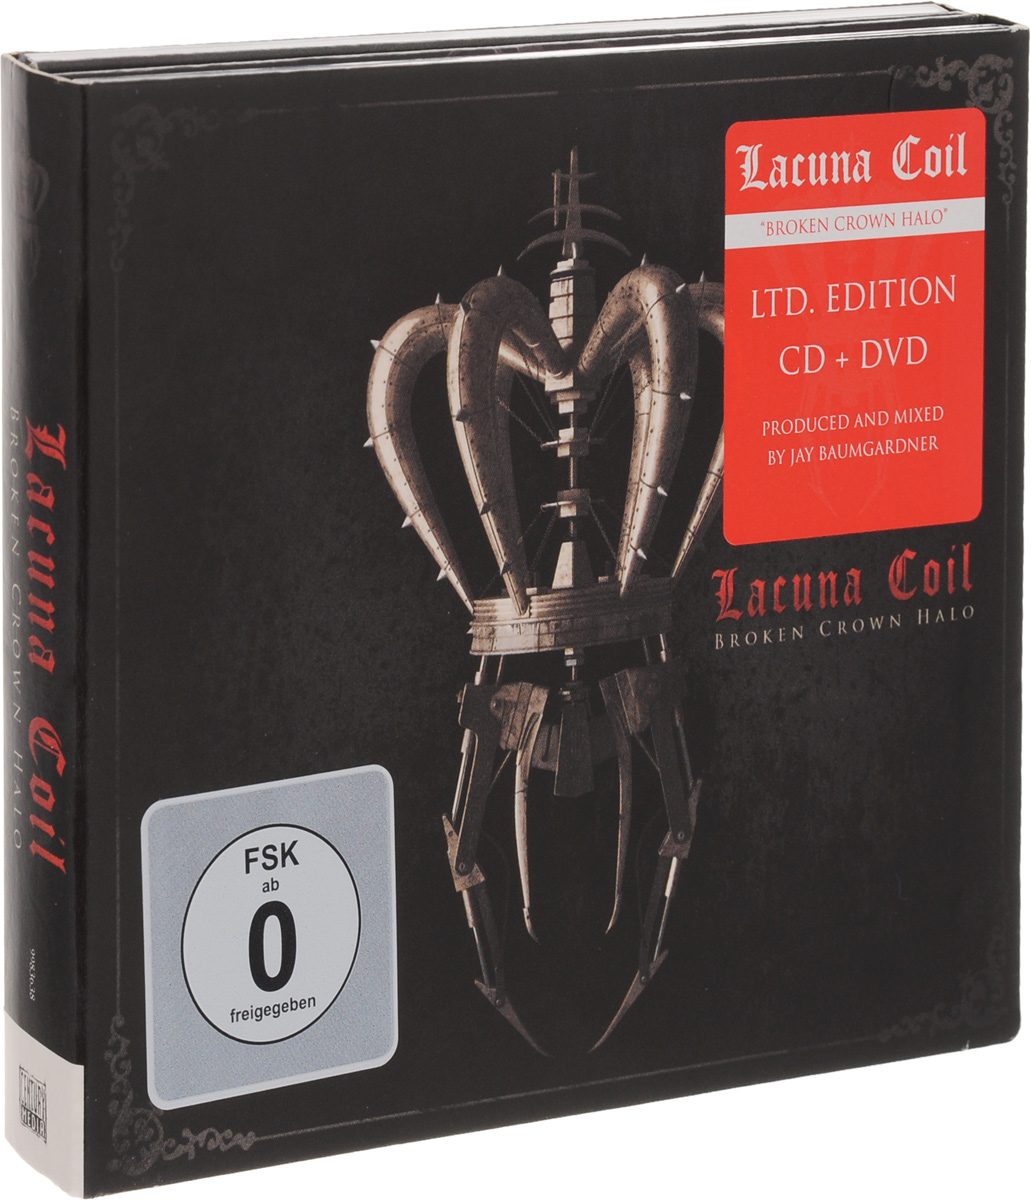 Lacuna Coil Lacuna Coil. Broken Crown Halo (CD + DVD) sirenia heavenwood therion tristania lacuna coil amorphis to die for tiamat theatre of tragedy moonspell the kovenant evereve samael virgin black dark nights best in gothic metal